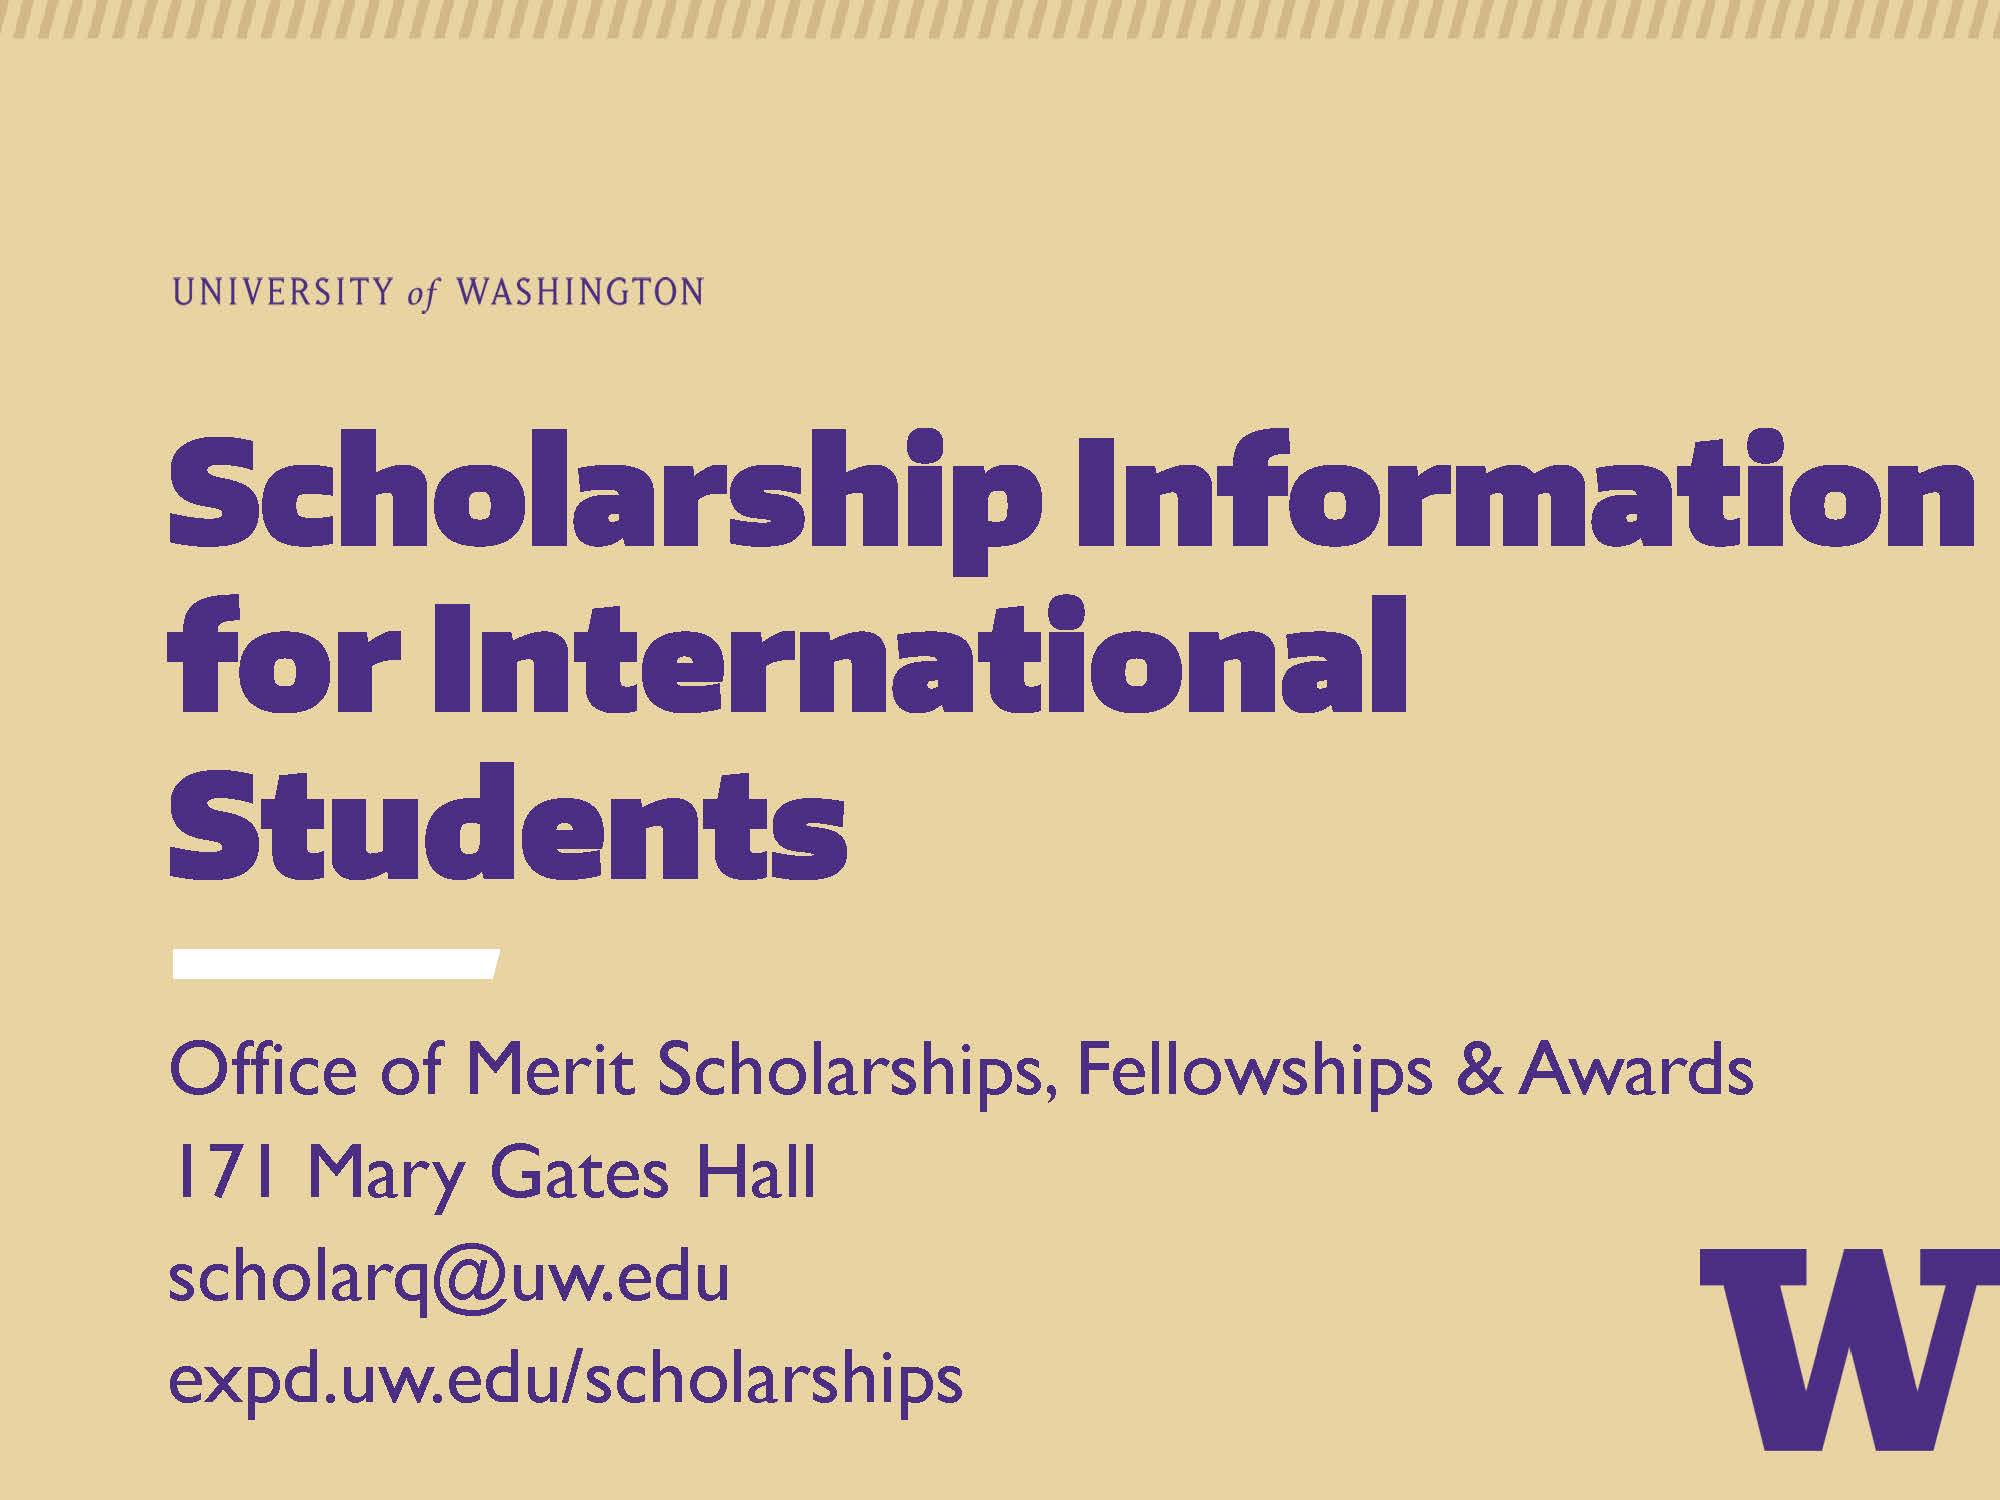 Scholarship Information for International Students_FIUTS 2018 International Welcome Week presentation_Page_01.jpg